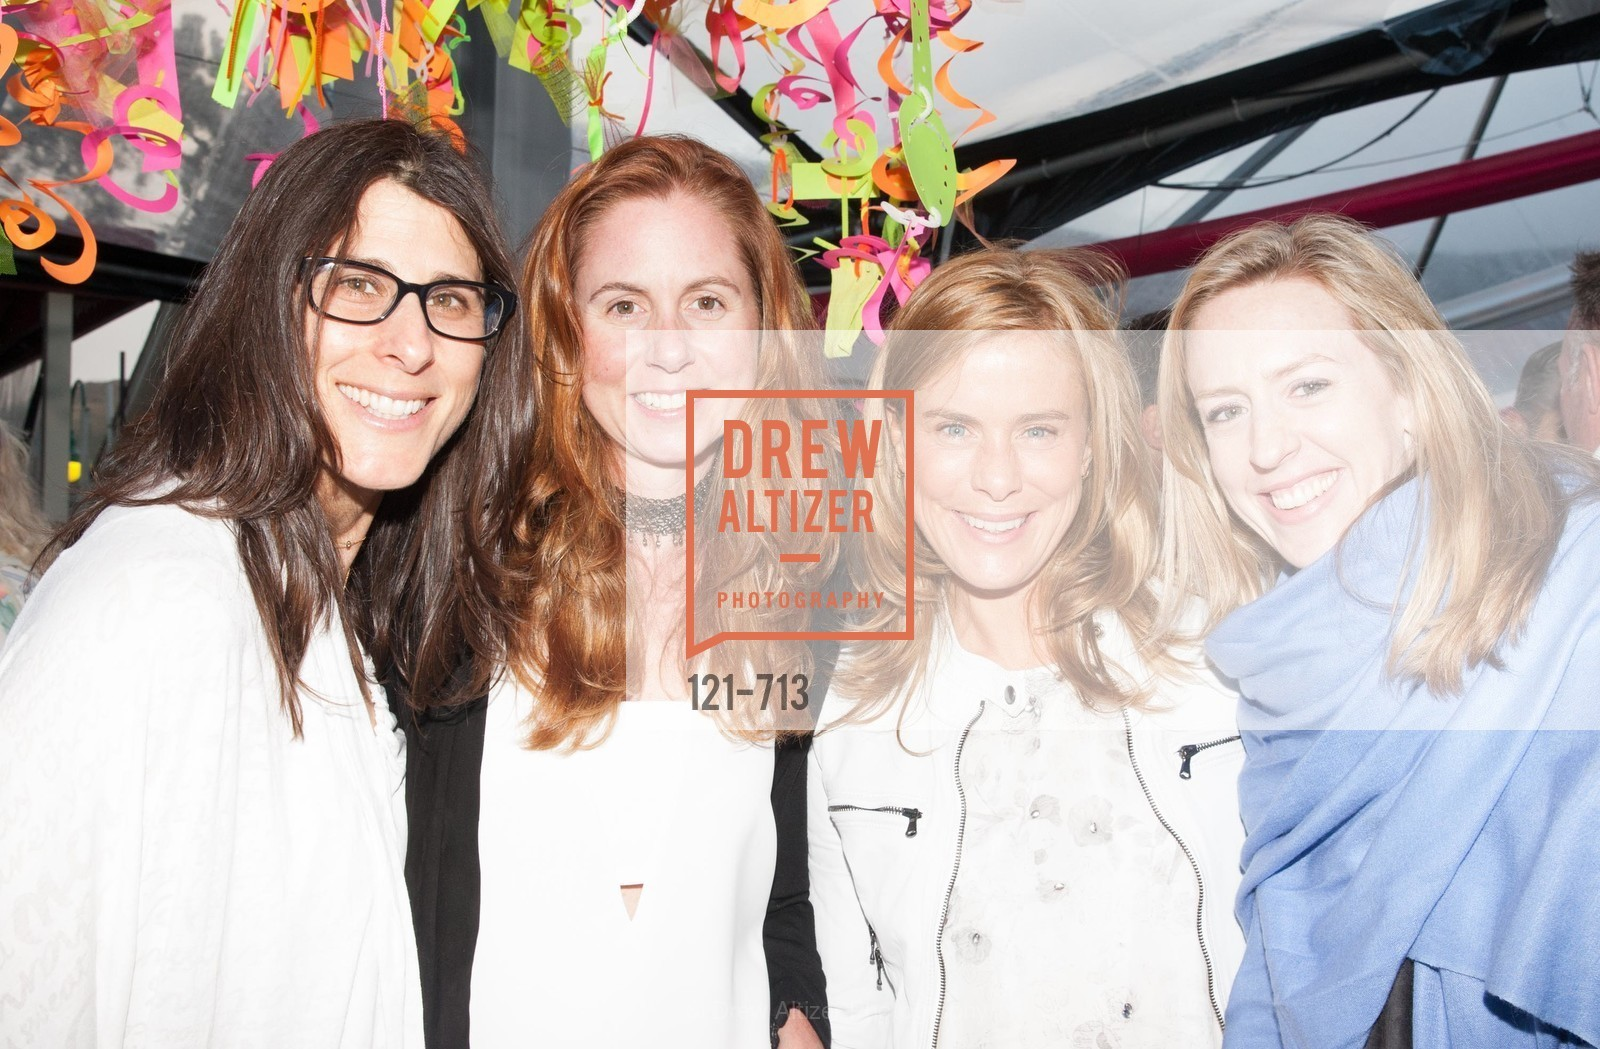 Rebecca Urban, Melissa Nau, AK L'Heureux, Virginia Watts, THE BAY AREA DISCOVERY MUSEUM'S Playdate 2015:  White to Bright, US, May 8th, 2015,Drew Altizer, Drew Altizer Photography, full-service agency, private events, San Francisco photographer, photographer california